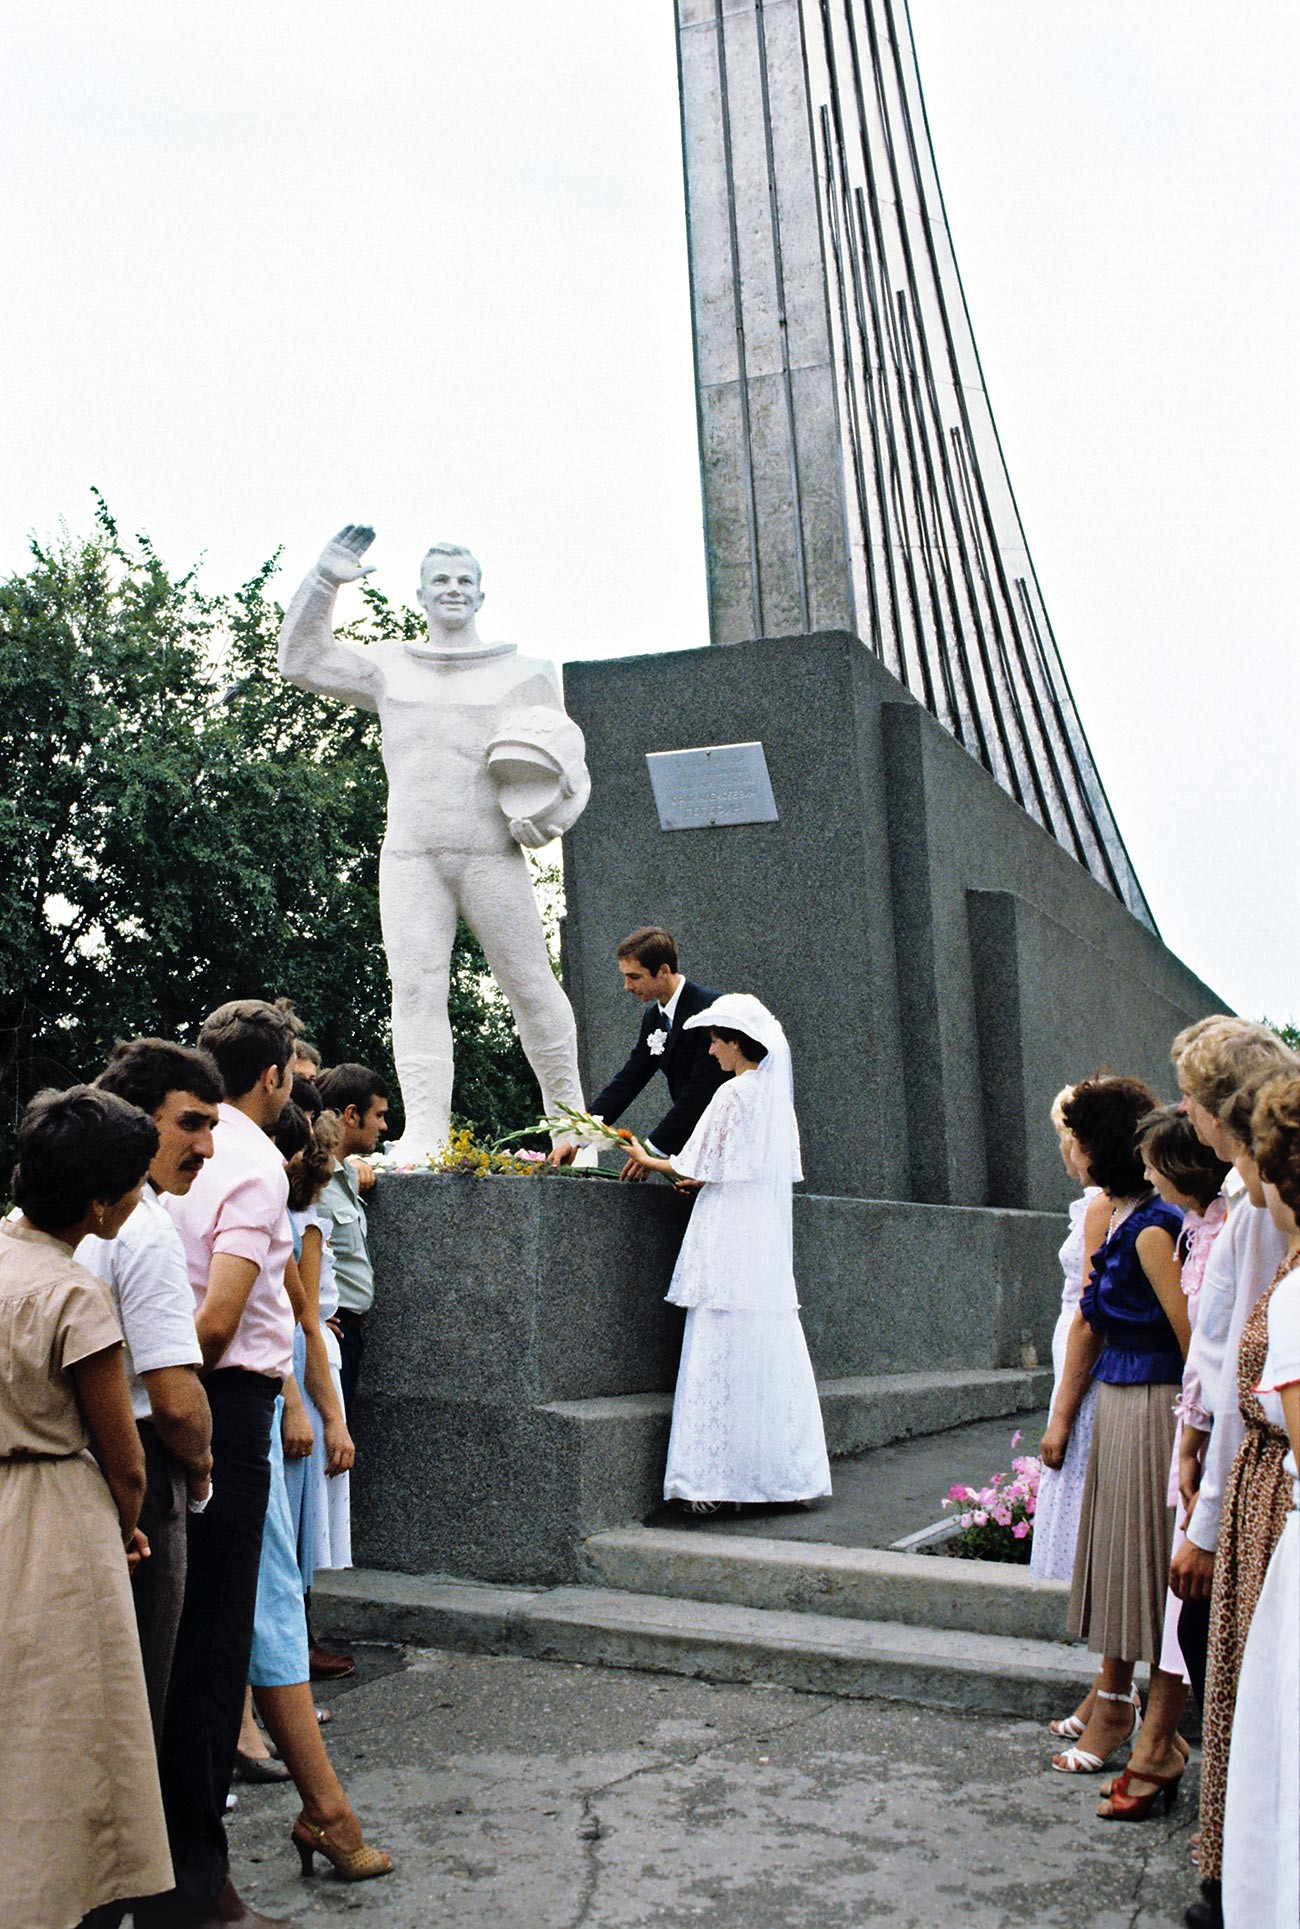 At the Gagarin monument, which is the site of his landing, Soviet times.